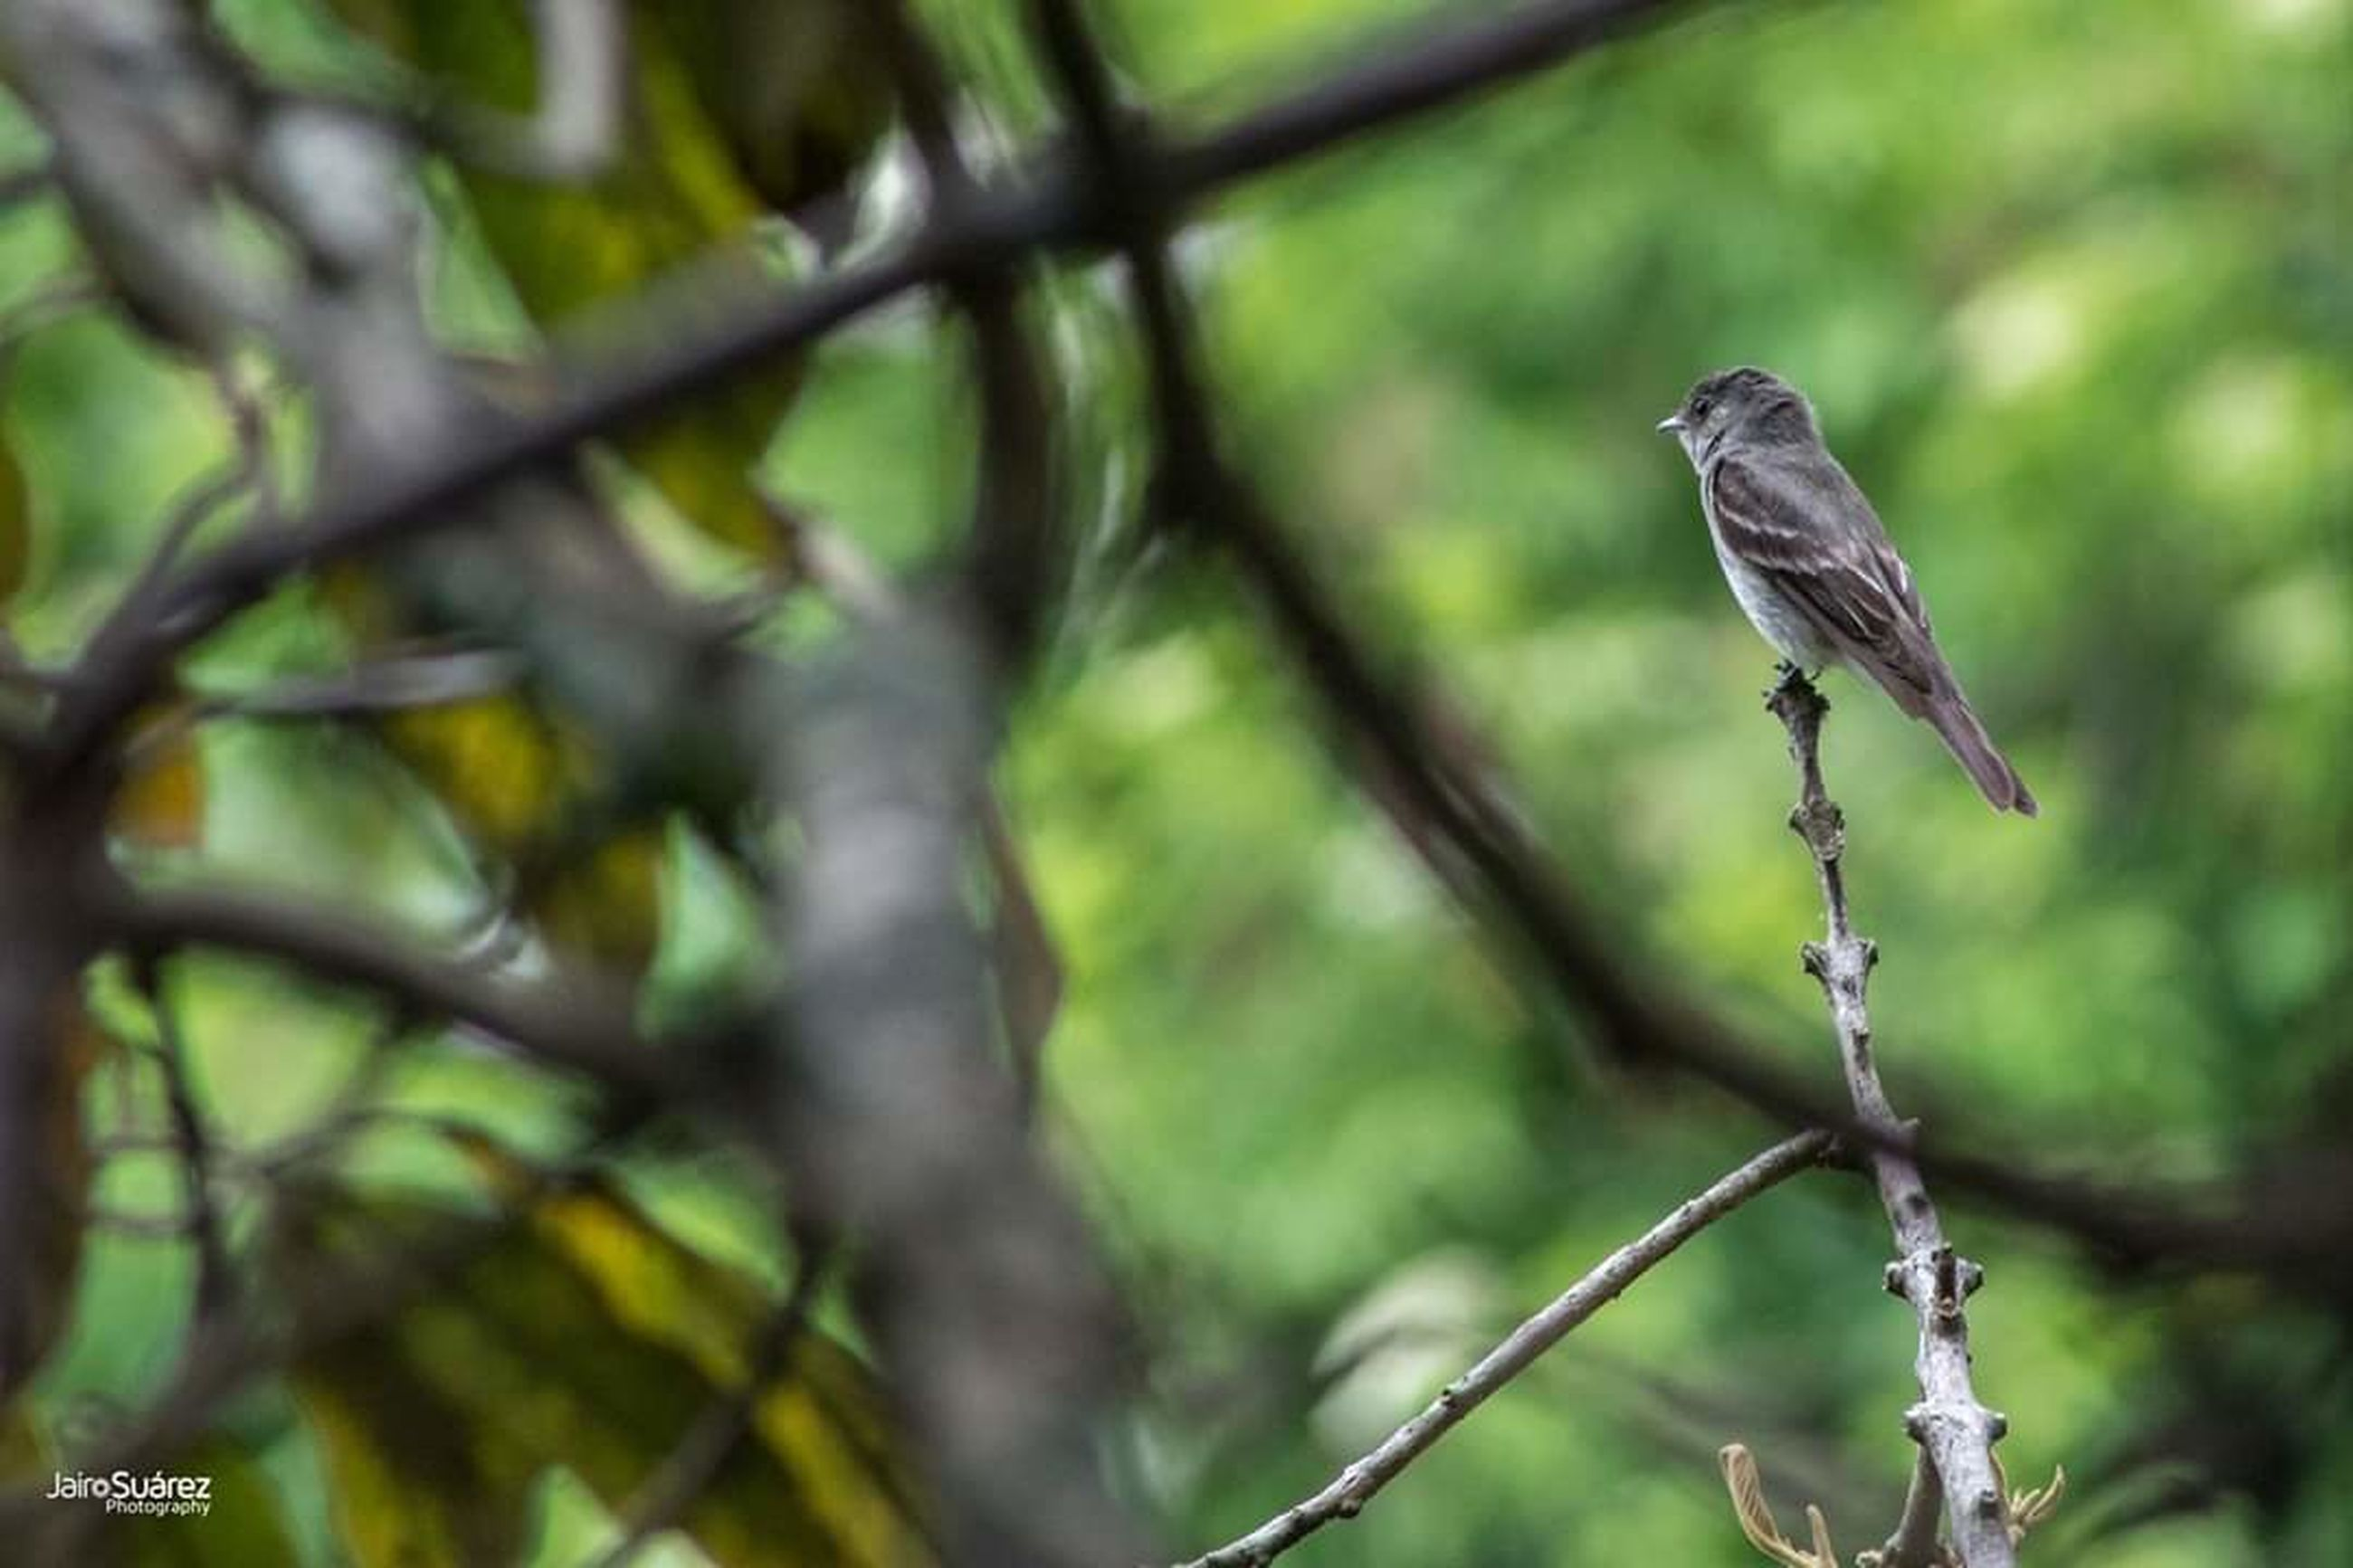 animal wildlife, animals in the wild, vertebrate, one animal, bird, tree, plant, perching, no people, focus on foreground, branch, nature, day, outdoors, close-up, sparrow, forest